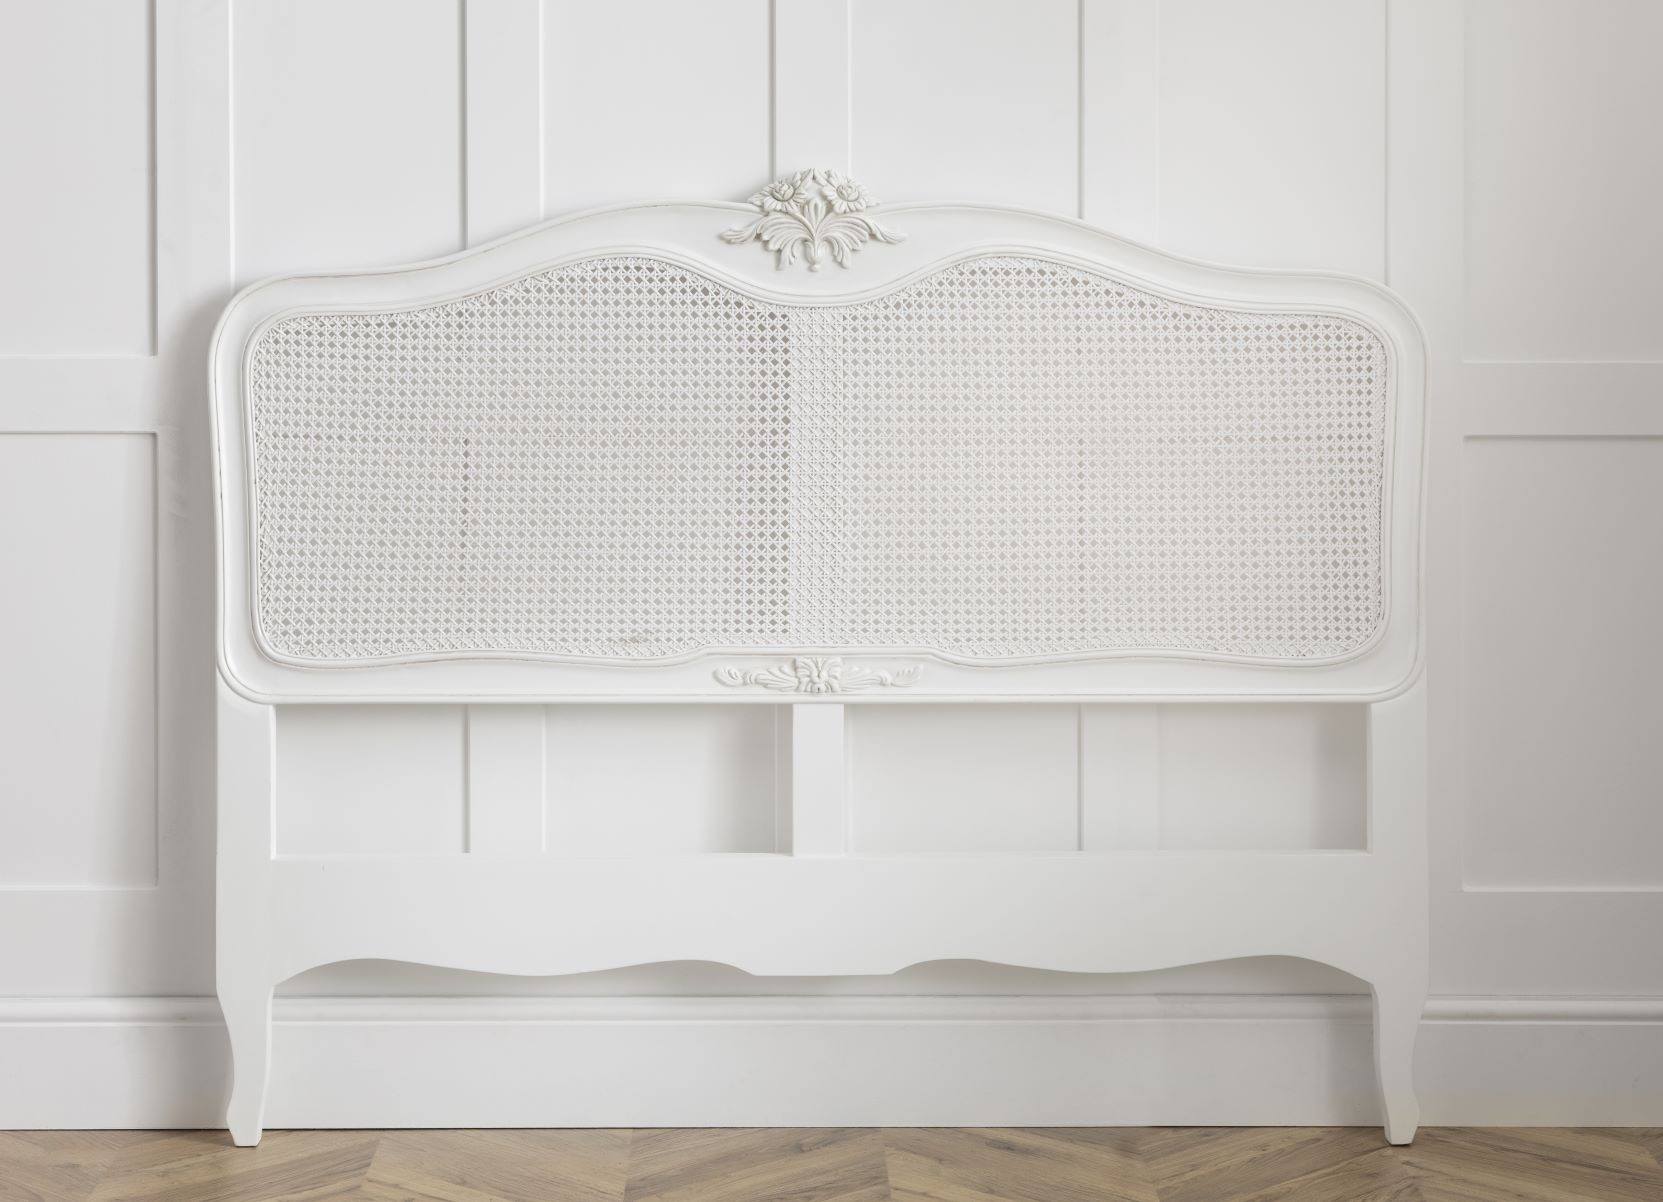 Louis French Antique White Rattan Headboard French Headboards White French Bedroom Furniture